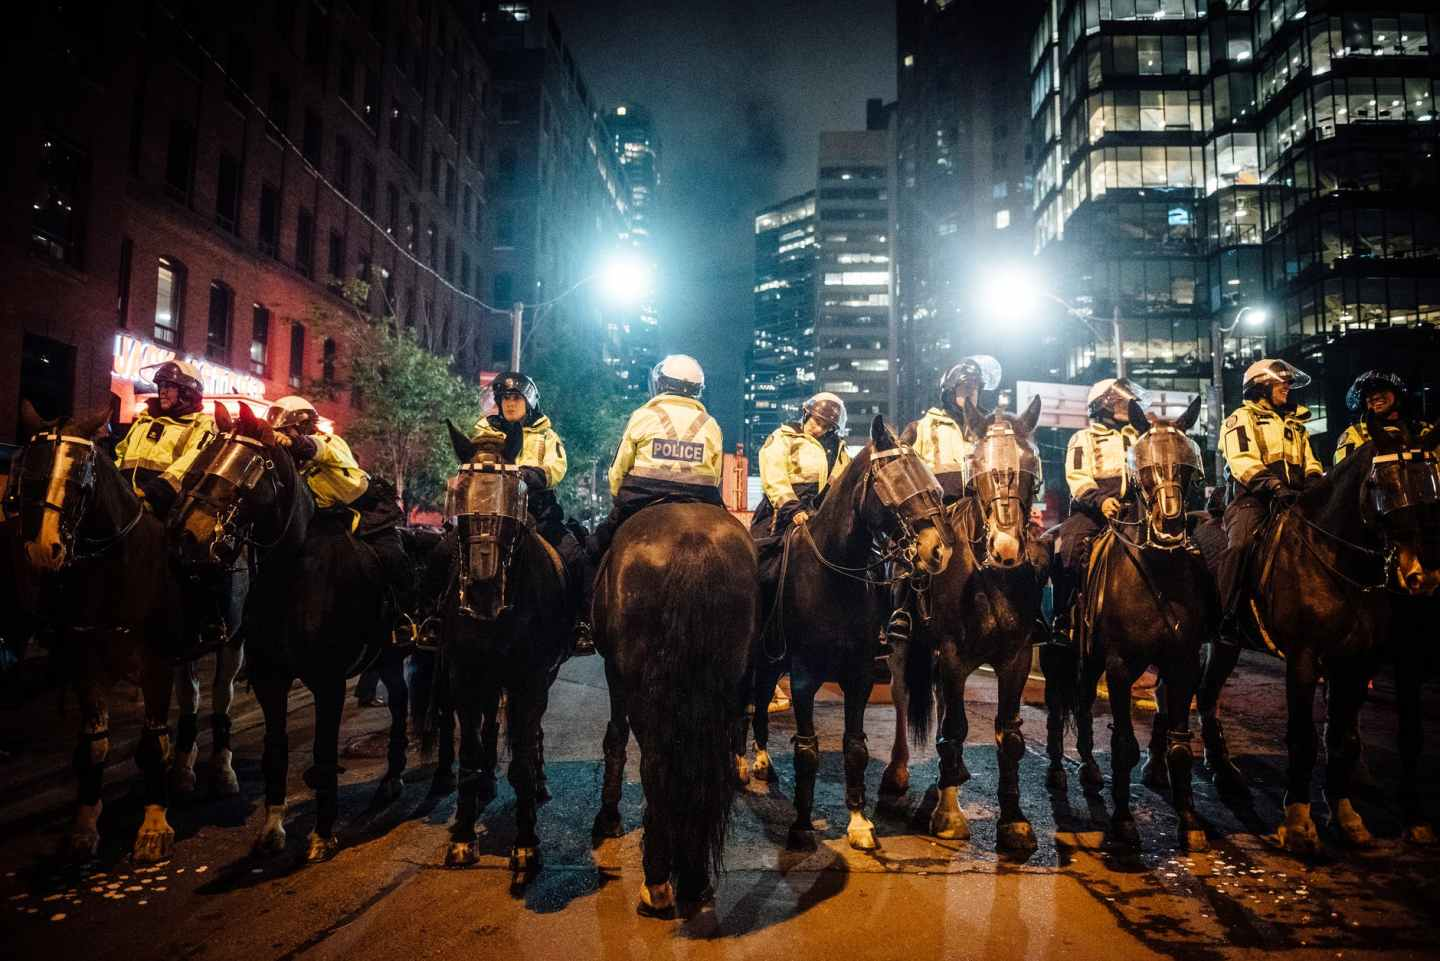 group of policemen on horse